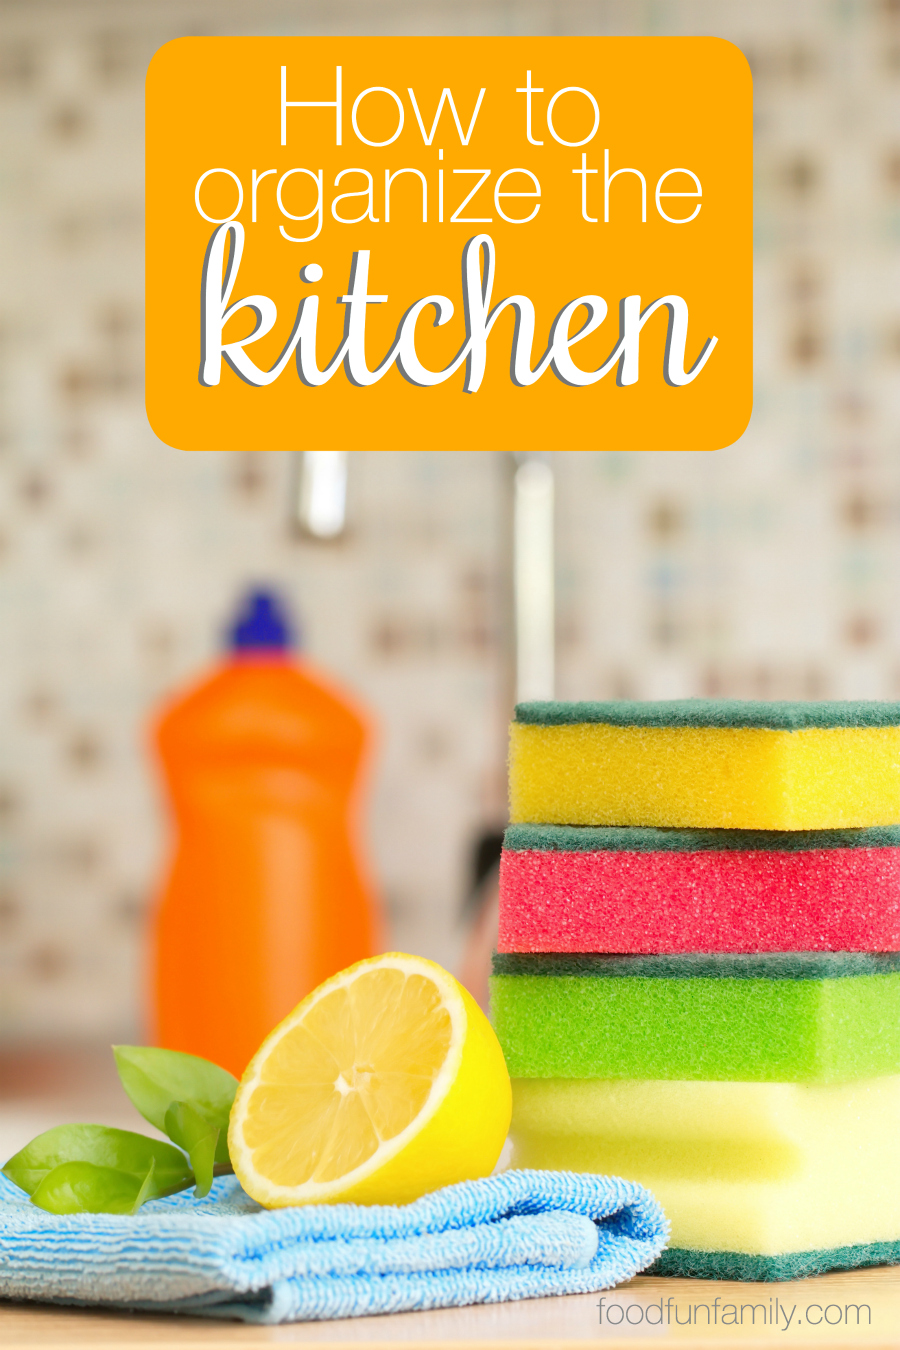 I love spending time in the kitchen, but it's too easy for the kitchen to get cluttered. Check out these easy steps to keep the kitchen organized. If you've ever dealt with a cluttered counter or a disorganized utensil drawer, you need these organization tips!